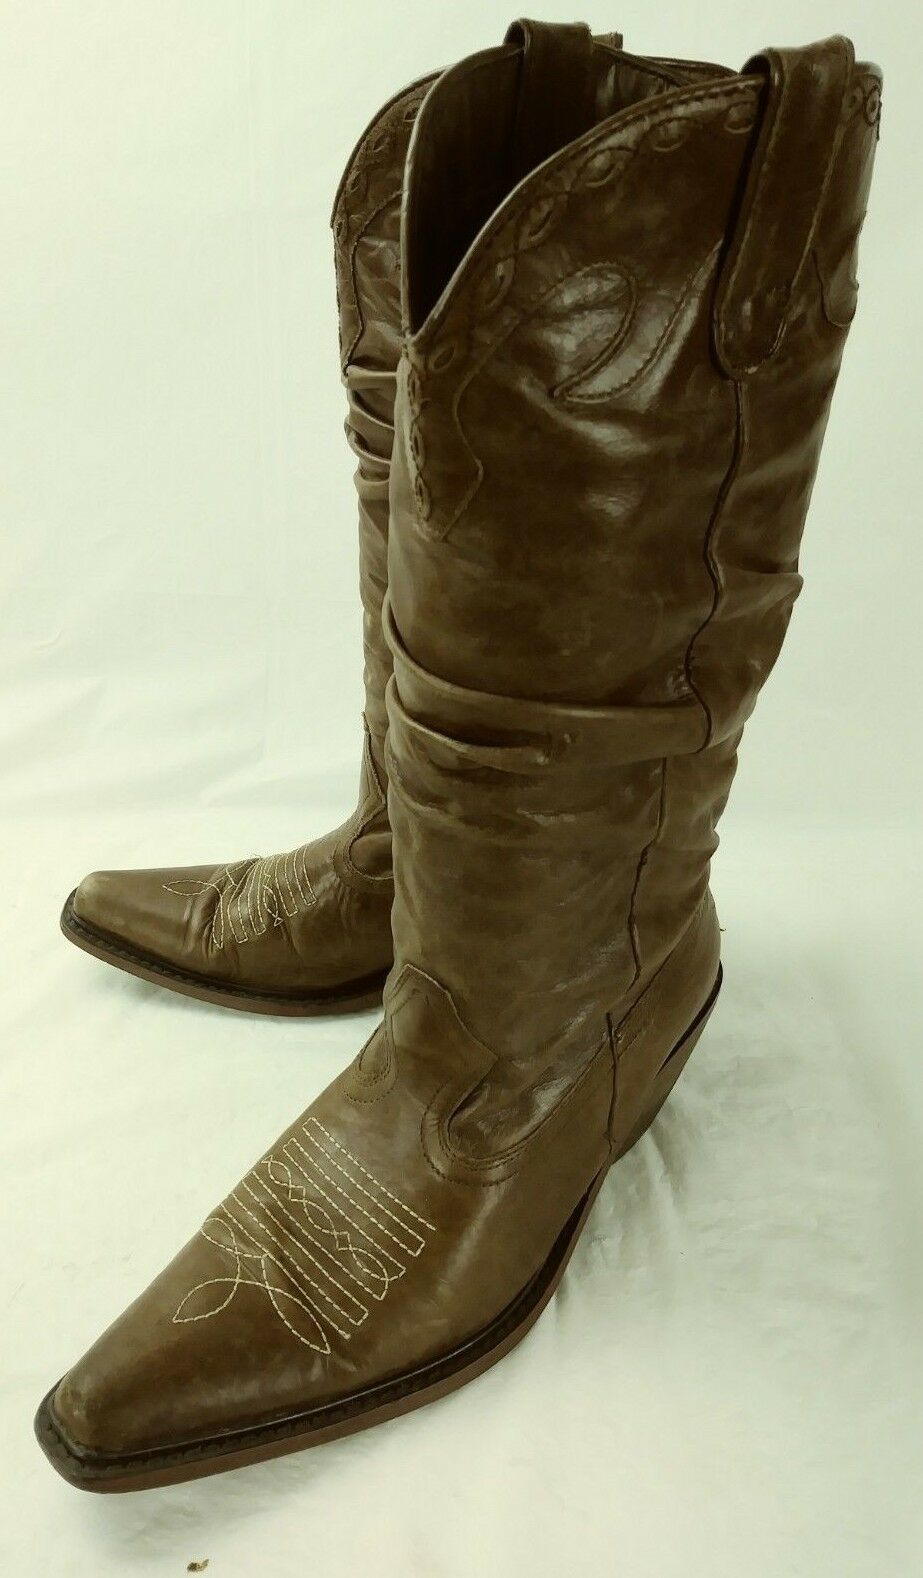 Steve Madden Wos Boots Tall SADDDLE US 6.5 M Brown Leather Slouchy Heels 5439